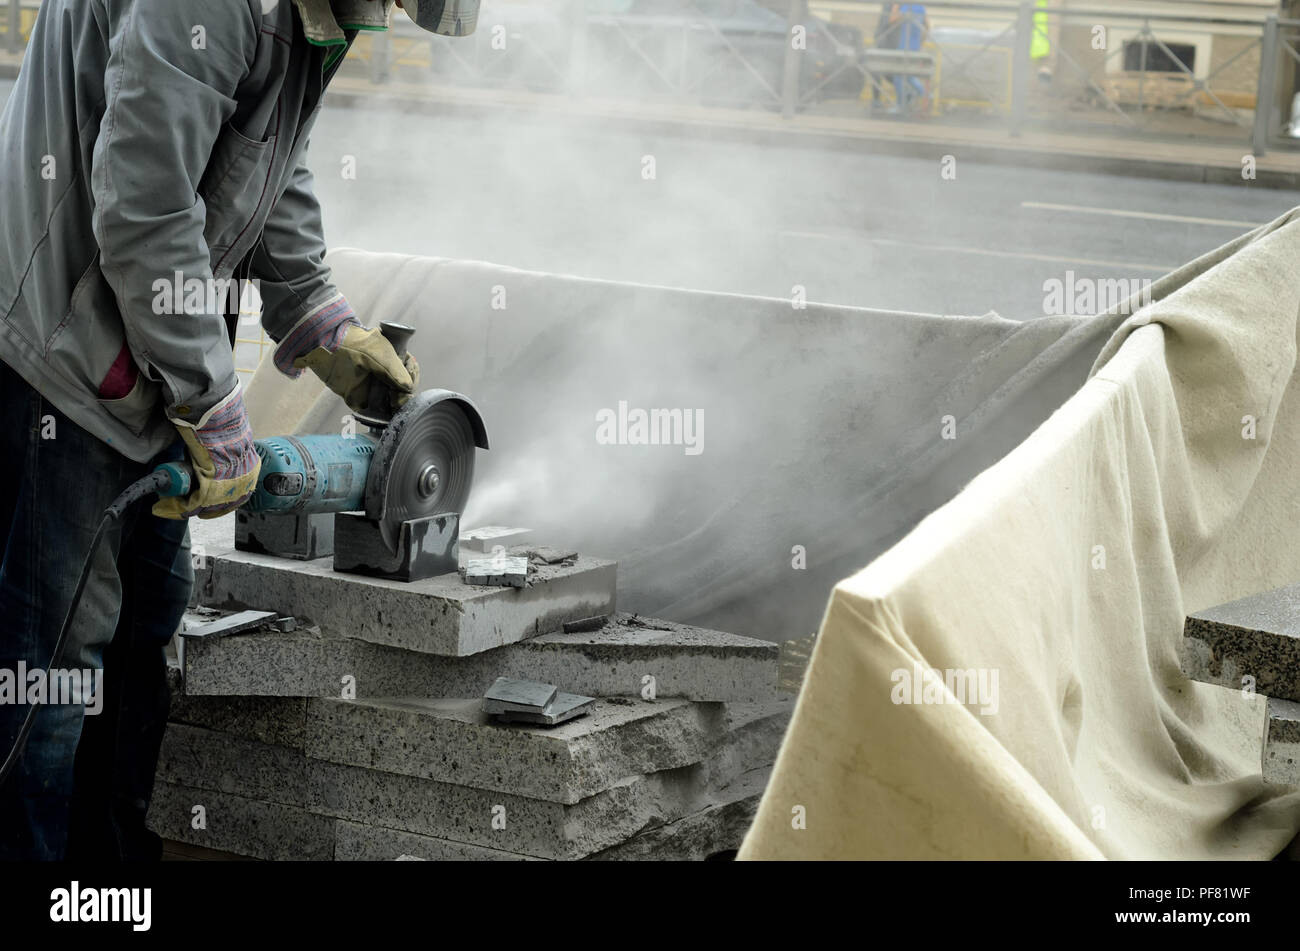 The worker cuts a big powerful angle grinder paving slabs. - Stock Image